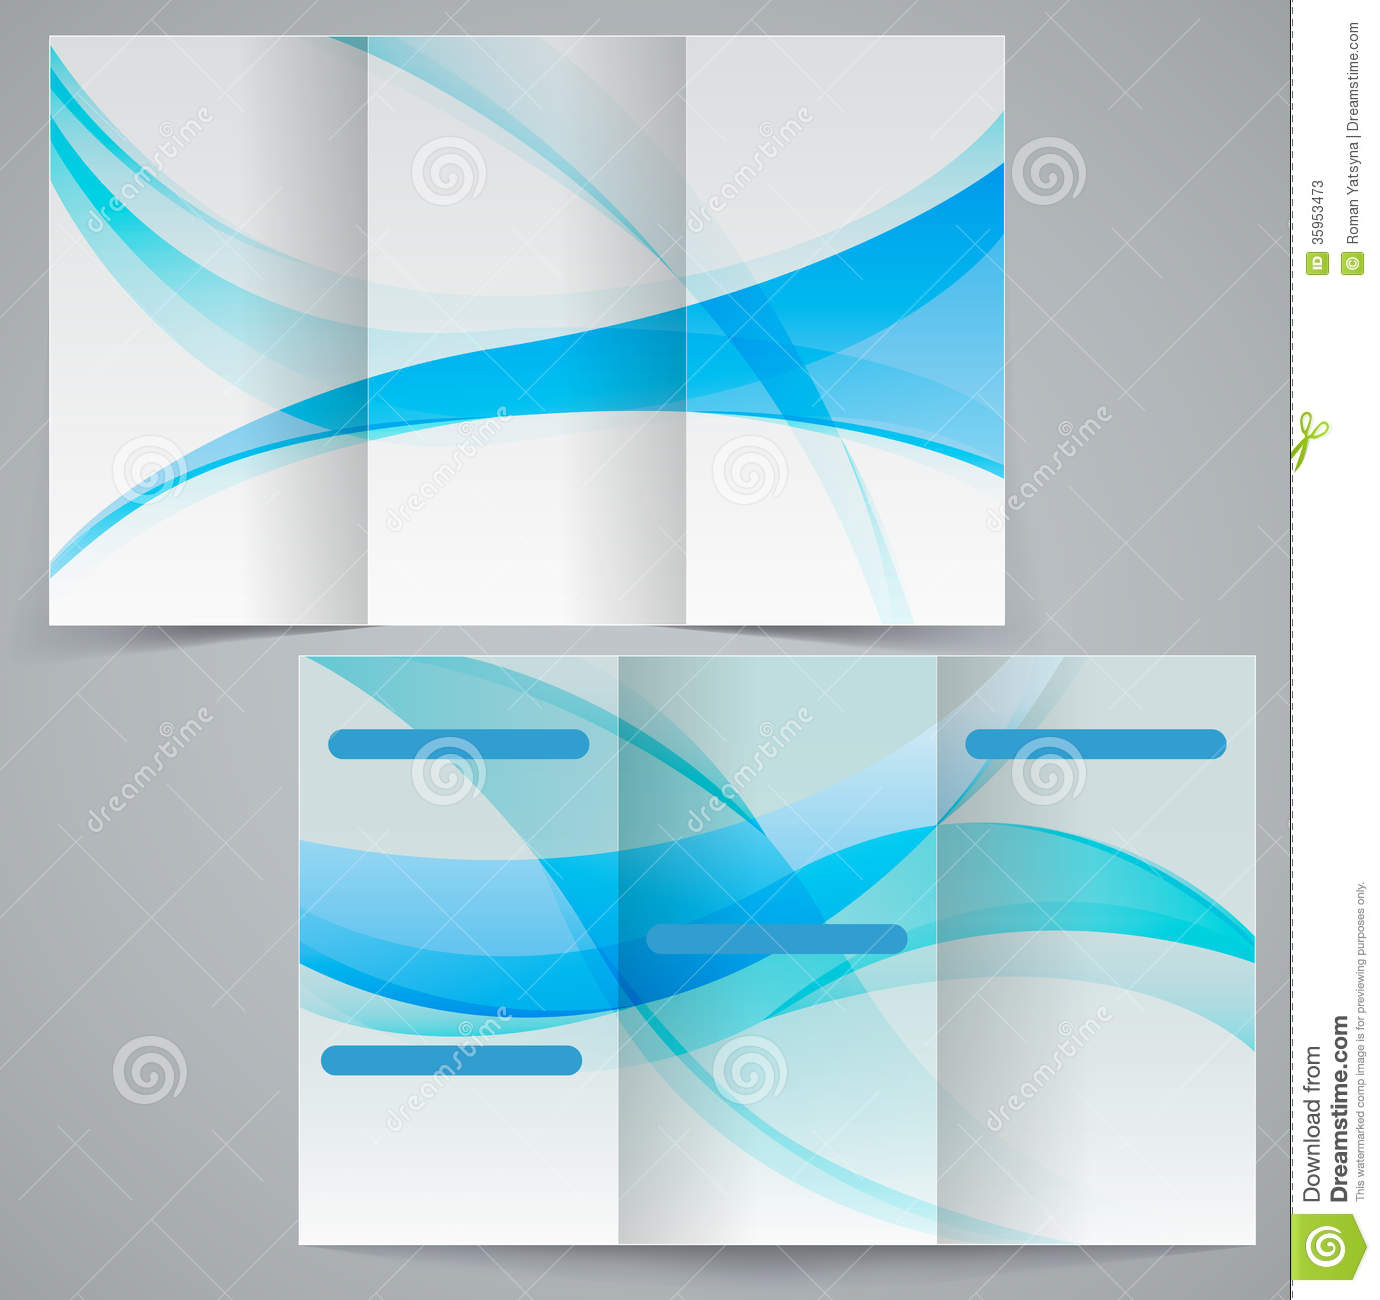 download brochure template - tri fold business brochure template vector blue d stock